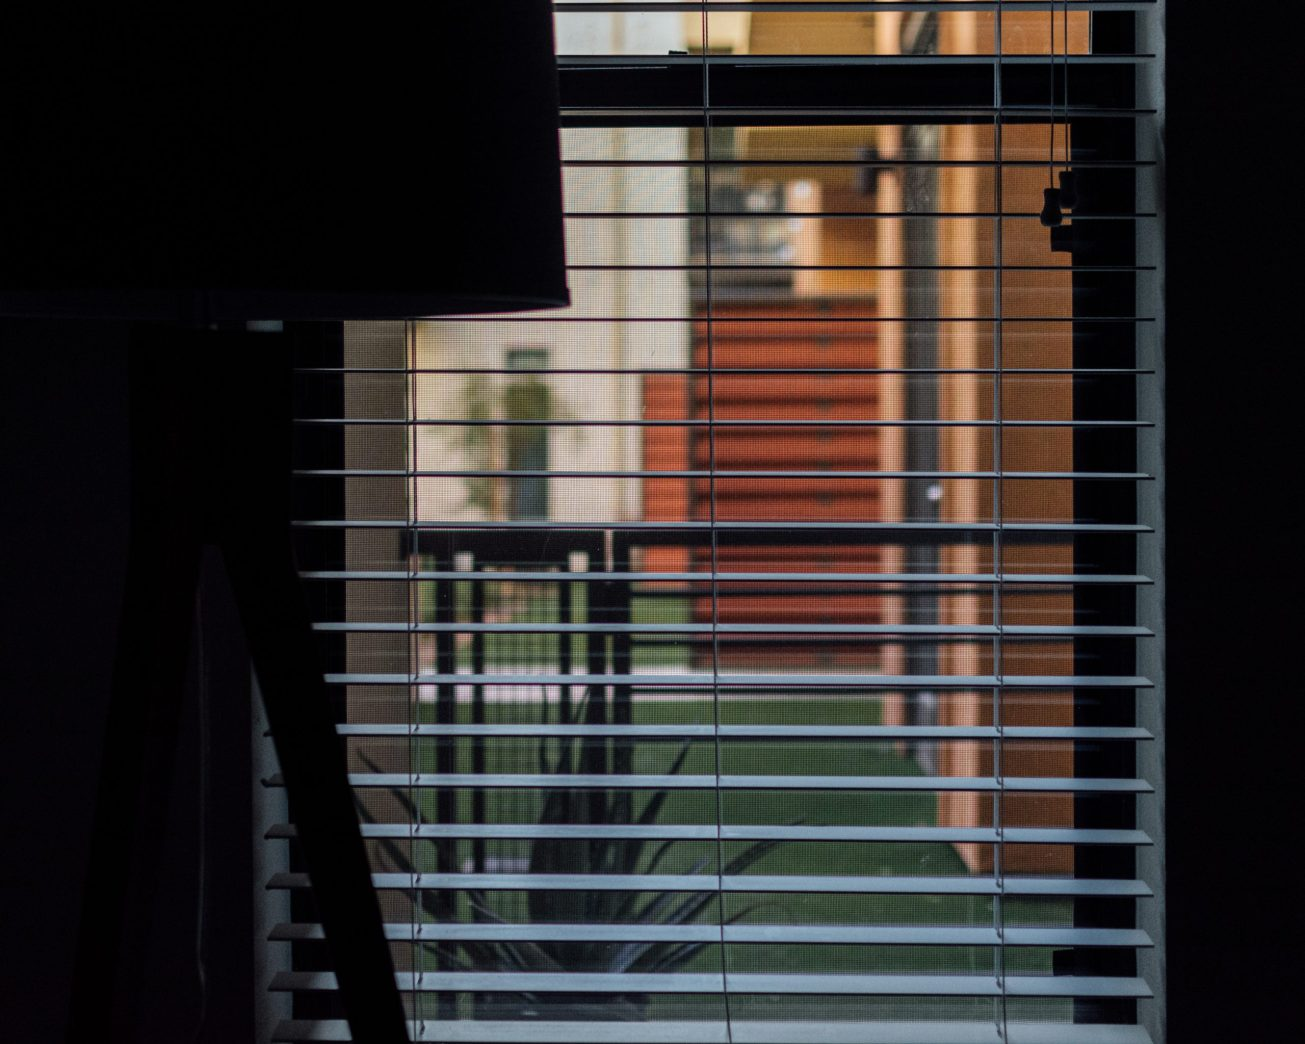 Photos of a silhouetted lamp against a window covered in blinds.